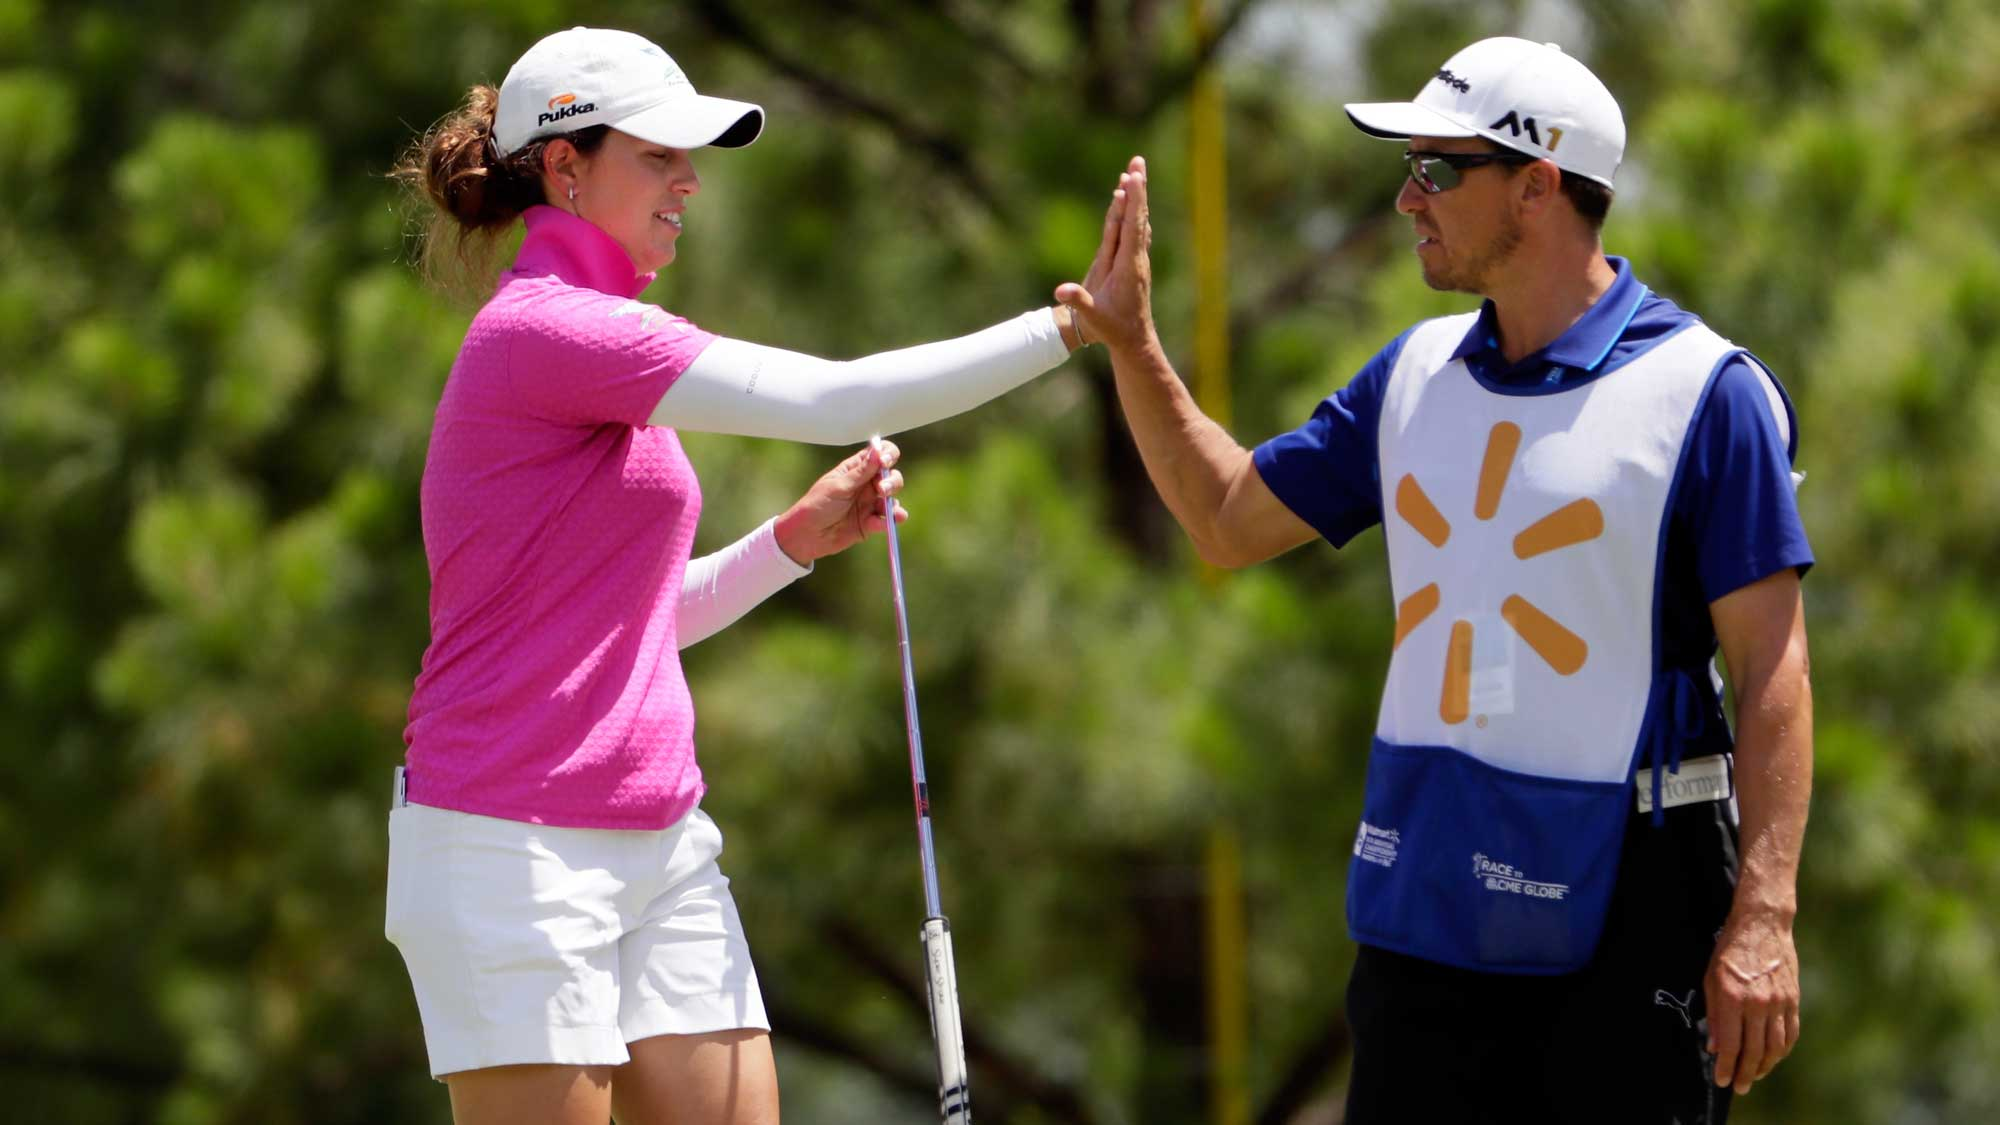 Giulia Molinaro of Italy high-fives her caddie after making a putt on the 1st hole during the final round of the Walmart NW Arkansas Championship